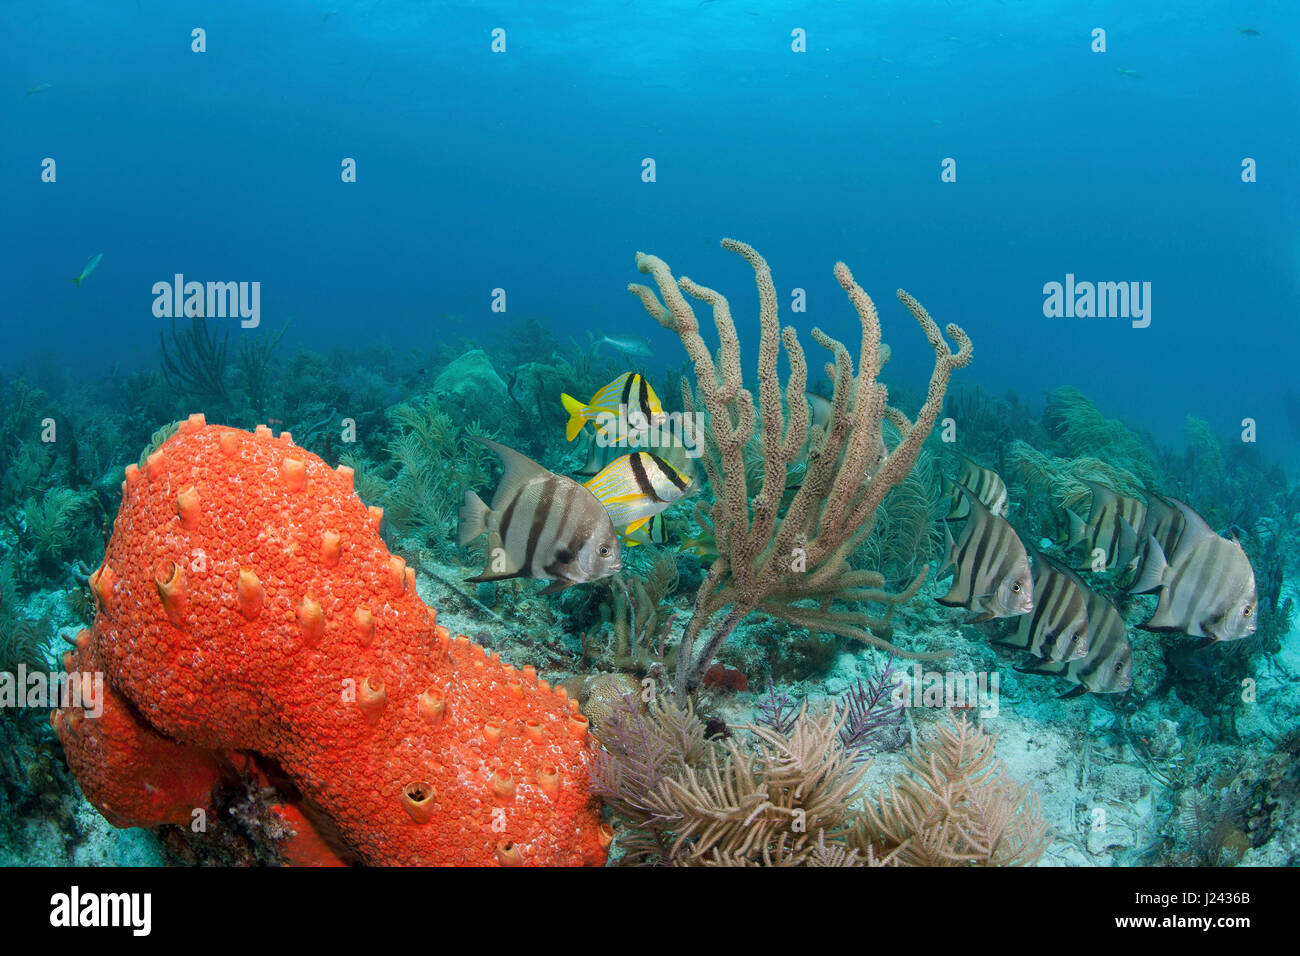 Atlantic spadefish and porkfish on a patch reef in Key Largo. - Stock-Bilder